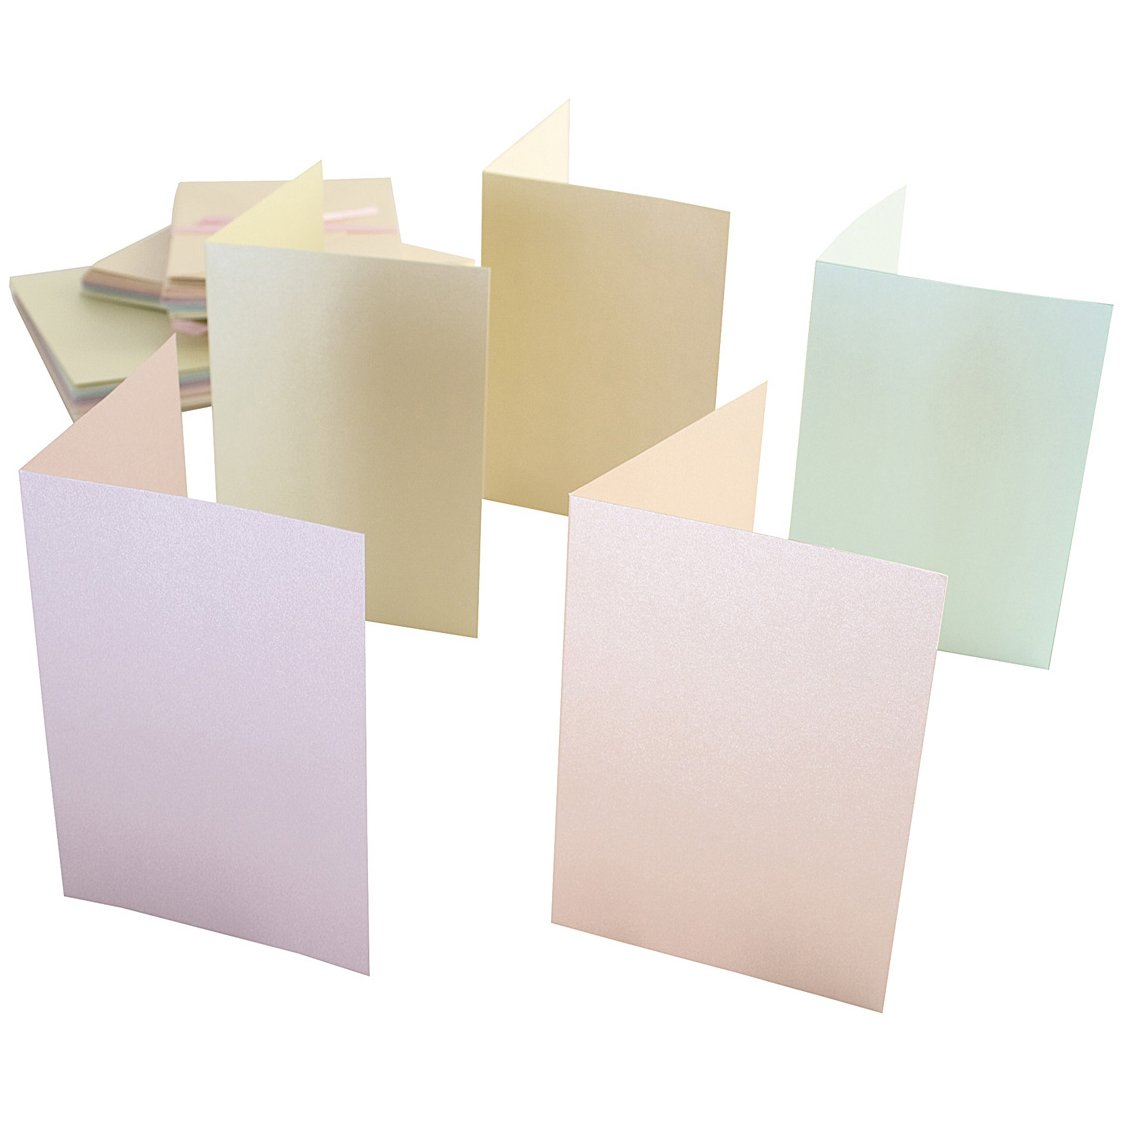 docrafts Anita's Pearlescent Cards/Envelopes A6, Pastel Ivory, Ecru, Pink, Peach and Green, 50-Pack